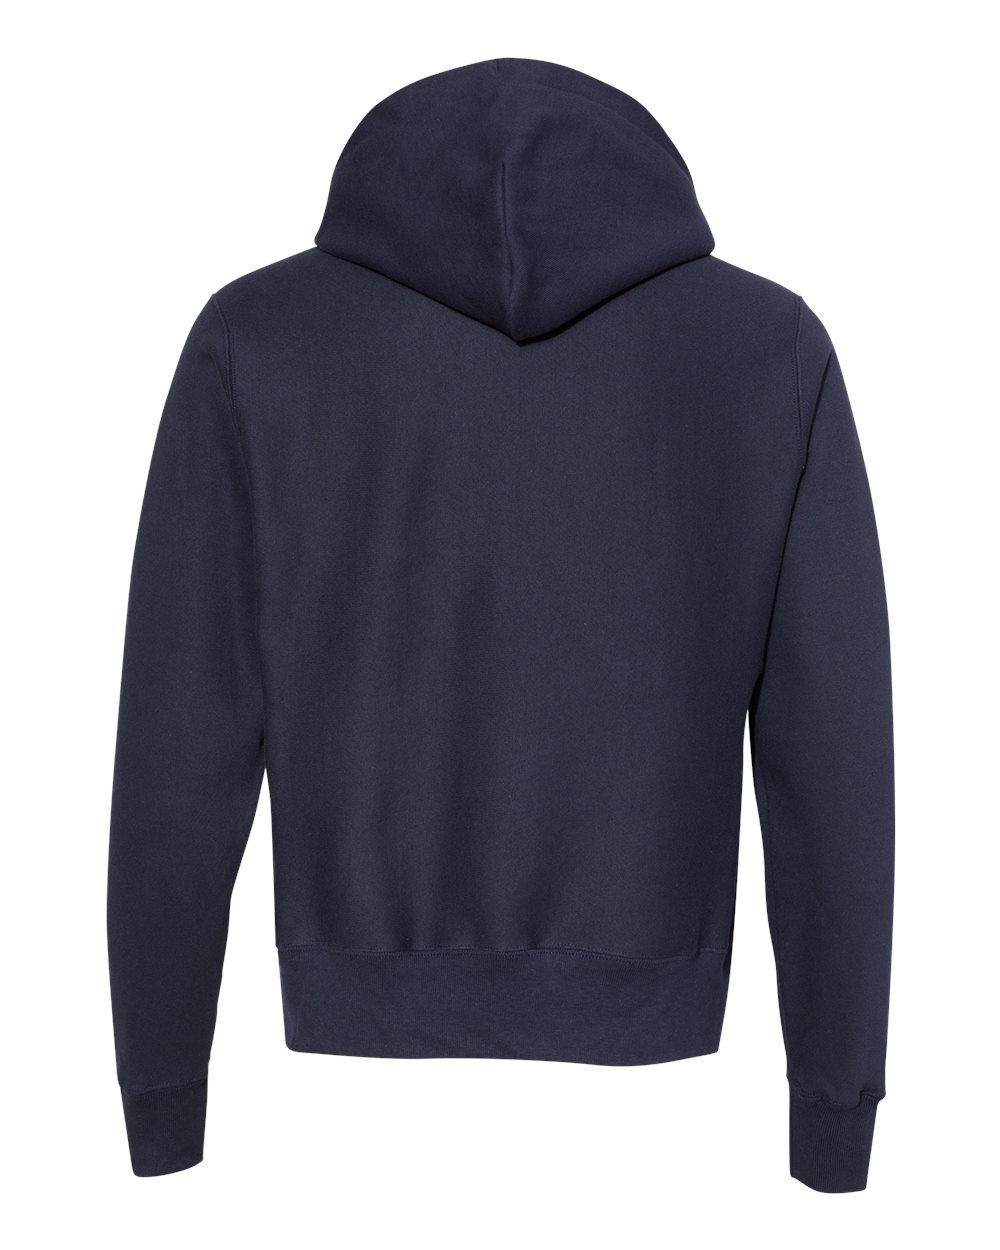 Champion-Mens-Reverse-Weave-Hooded-Pullover-Sweatshirt-S101-up-to-3XL thumbnail 31